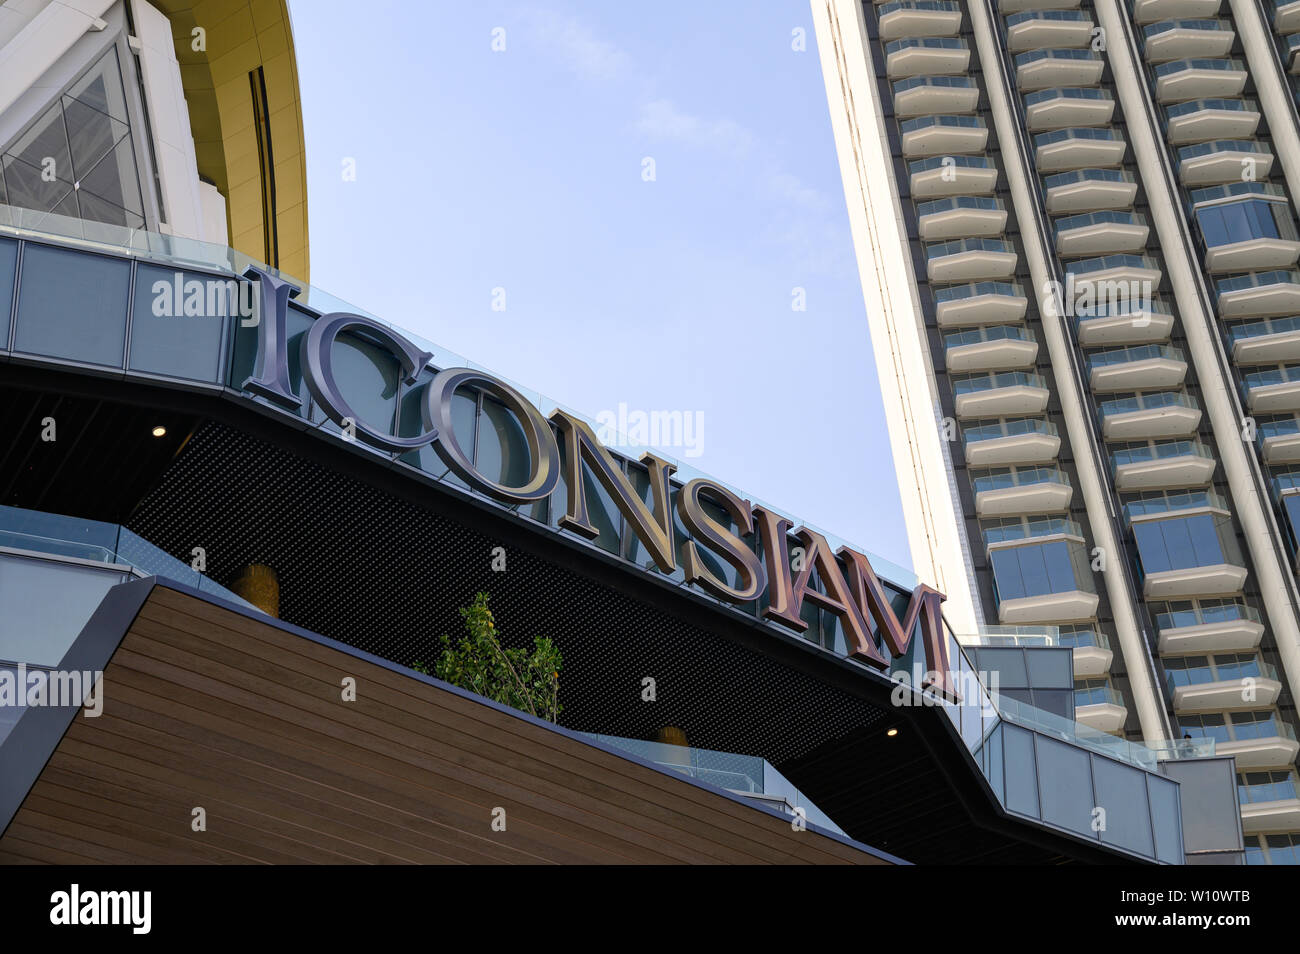 Bangkok, Thailand - Jan 31 2019 : Large project of Icon siam department store with condominium at Chao Phraya riverside - Stock Image